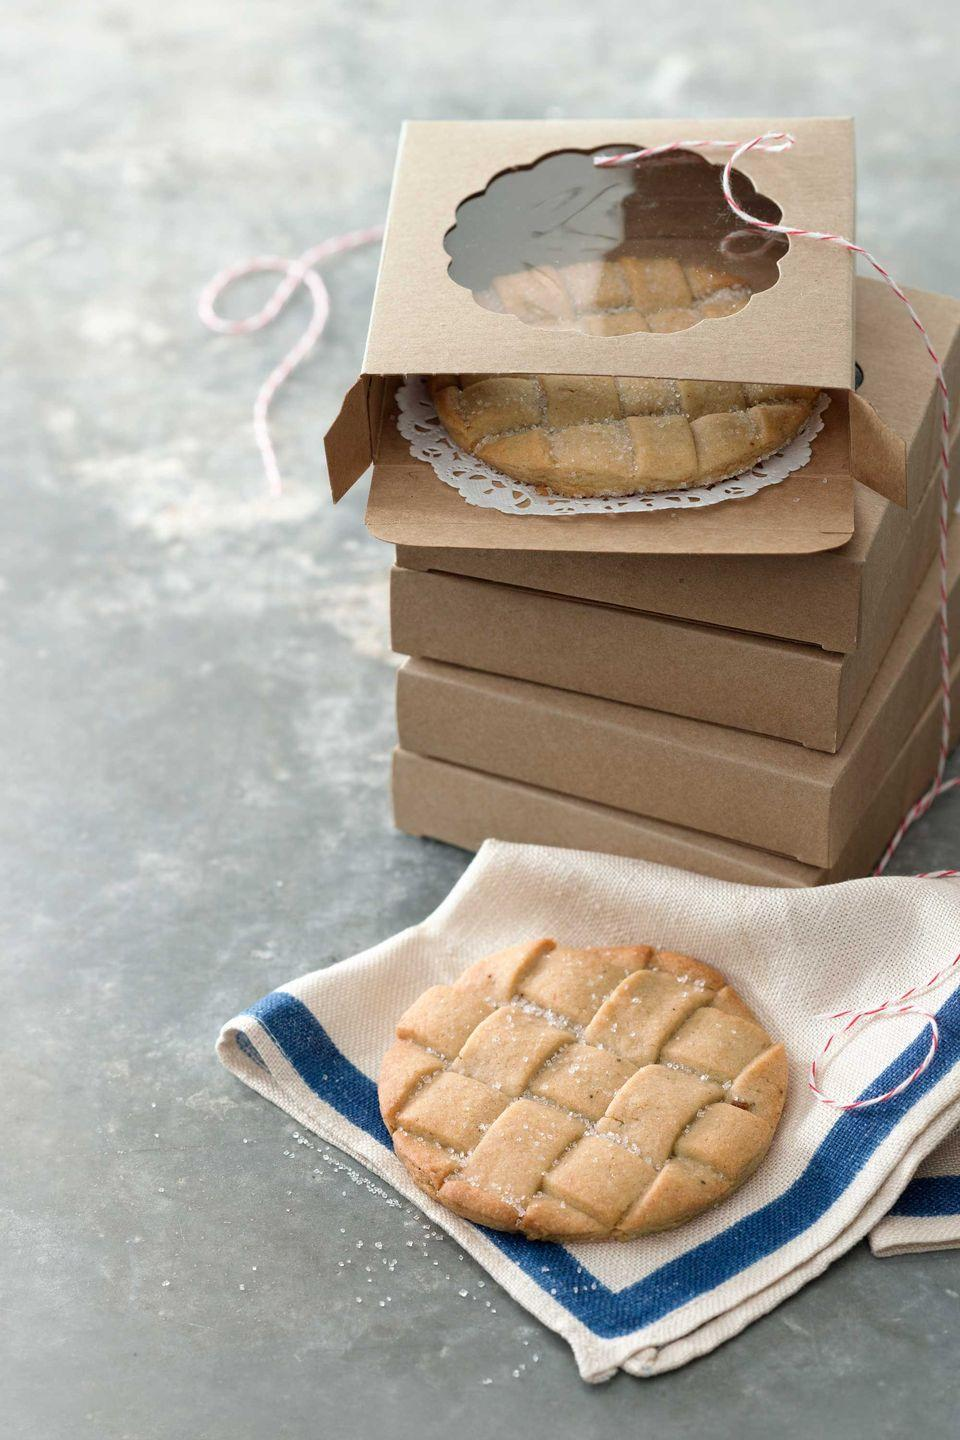 "<p>If you love sugar cookies and buttery pie crust, these cookies are for you. They are simple, elegant, and sure to impress. Try gifting them at a Christmas cookie swap or bring them to your next holiday party.</p><p><a href=""https://www.countryliving.com/food-drinks/recipes/a4406/cinnamon-sugar-lattice-cookies-recipe-clx1213/"" rel=""nofollow noopener"" target=""_blank"" data-ylk=""slk:Get the recipe."" class=""link rapid-noclick-resp""><strong>Get the recipe.</strong></a></p><p><a class=""link rapid-noclick-resp"" href=""https://www.amazon.com/CK-Products-Sanding-Sugar-White/dp/B0001W6NTO?tag=syn-yahoo-20&ascsubtag=%5Bartid%7C10050.g.647%5Bsrc%7Cyahoo-us"" rel=""nofollow noopener"" target=""_blank"" data-ylk=""slk:SHOP SANDING SUGARS"">SHOP SANDING SUGARS</a><br></p>"